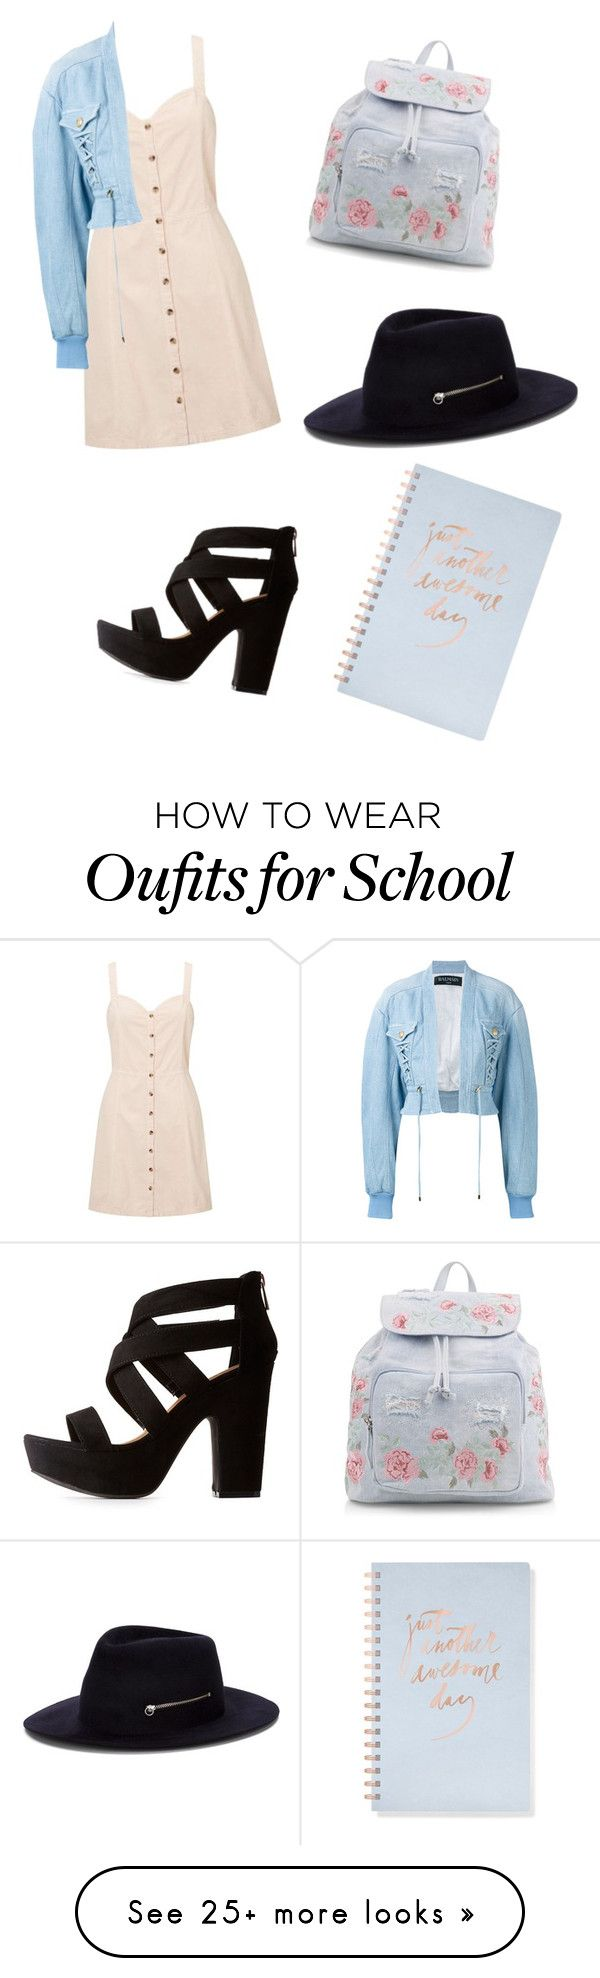 """Back To School.???"" by lavensorrow on Polyvore featuring Miss Selfridge, Balmain, Bamboo, New Look, Larose and Fringe"